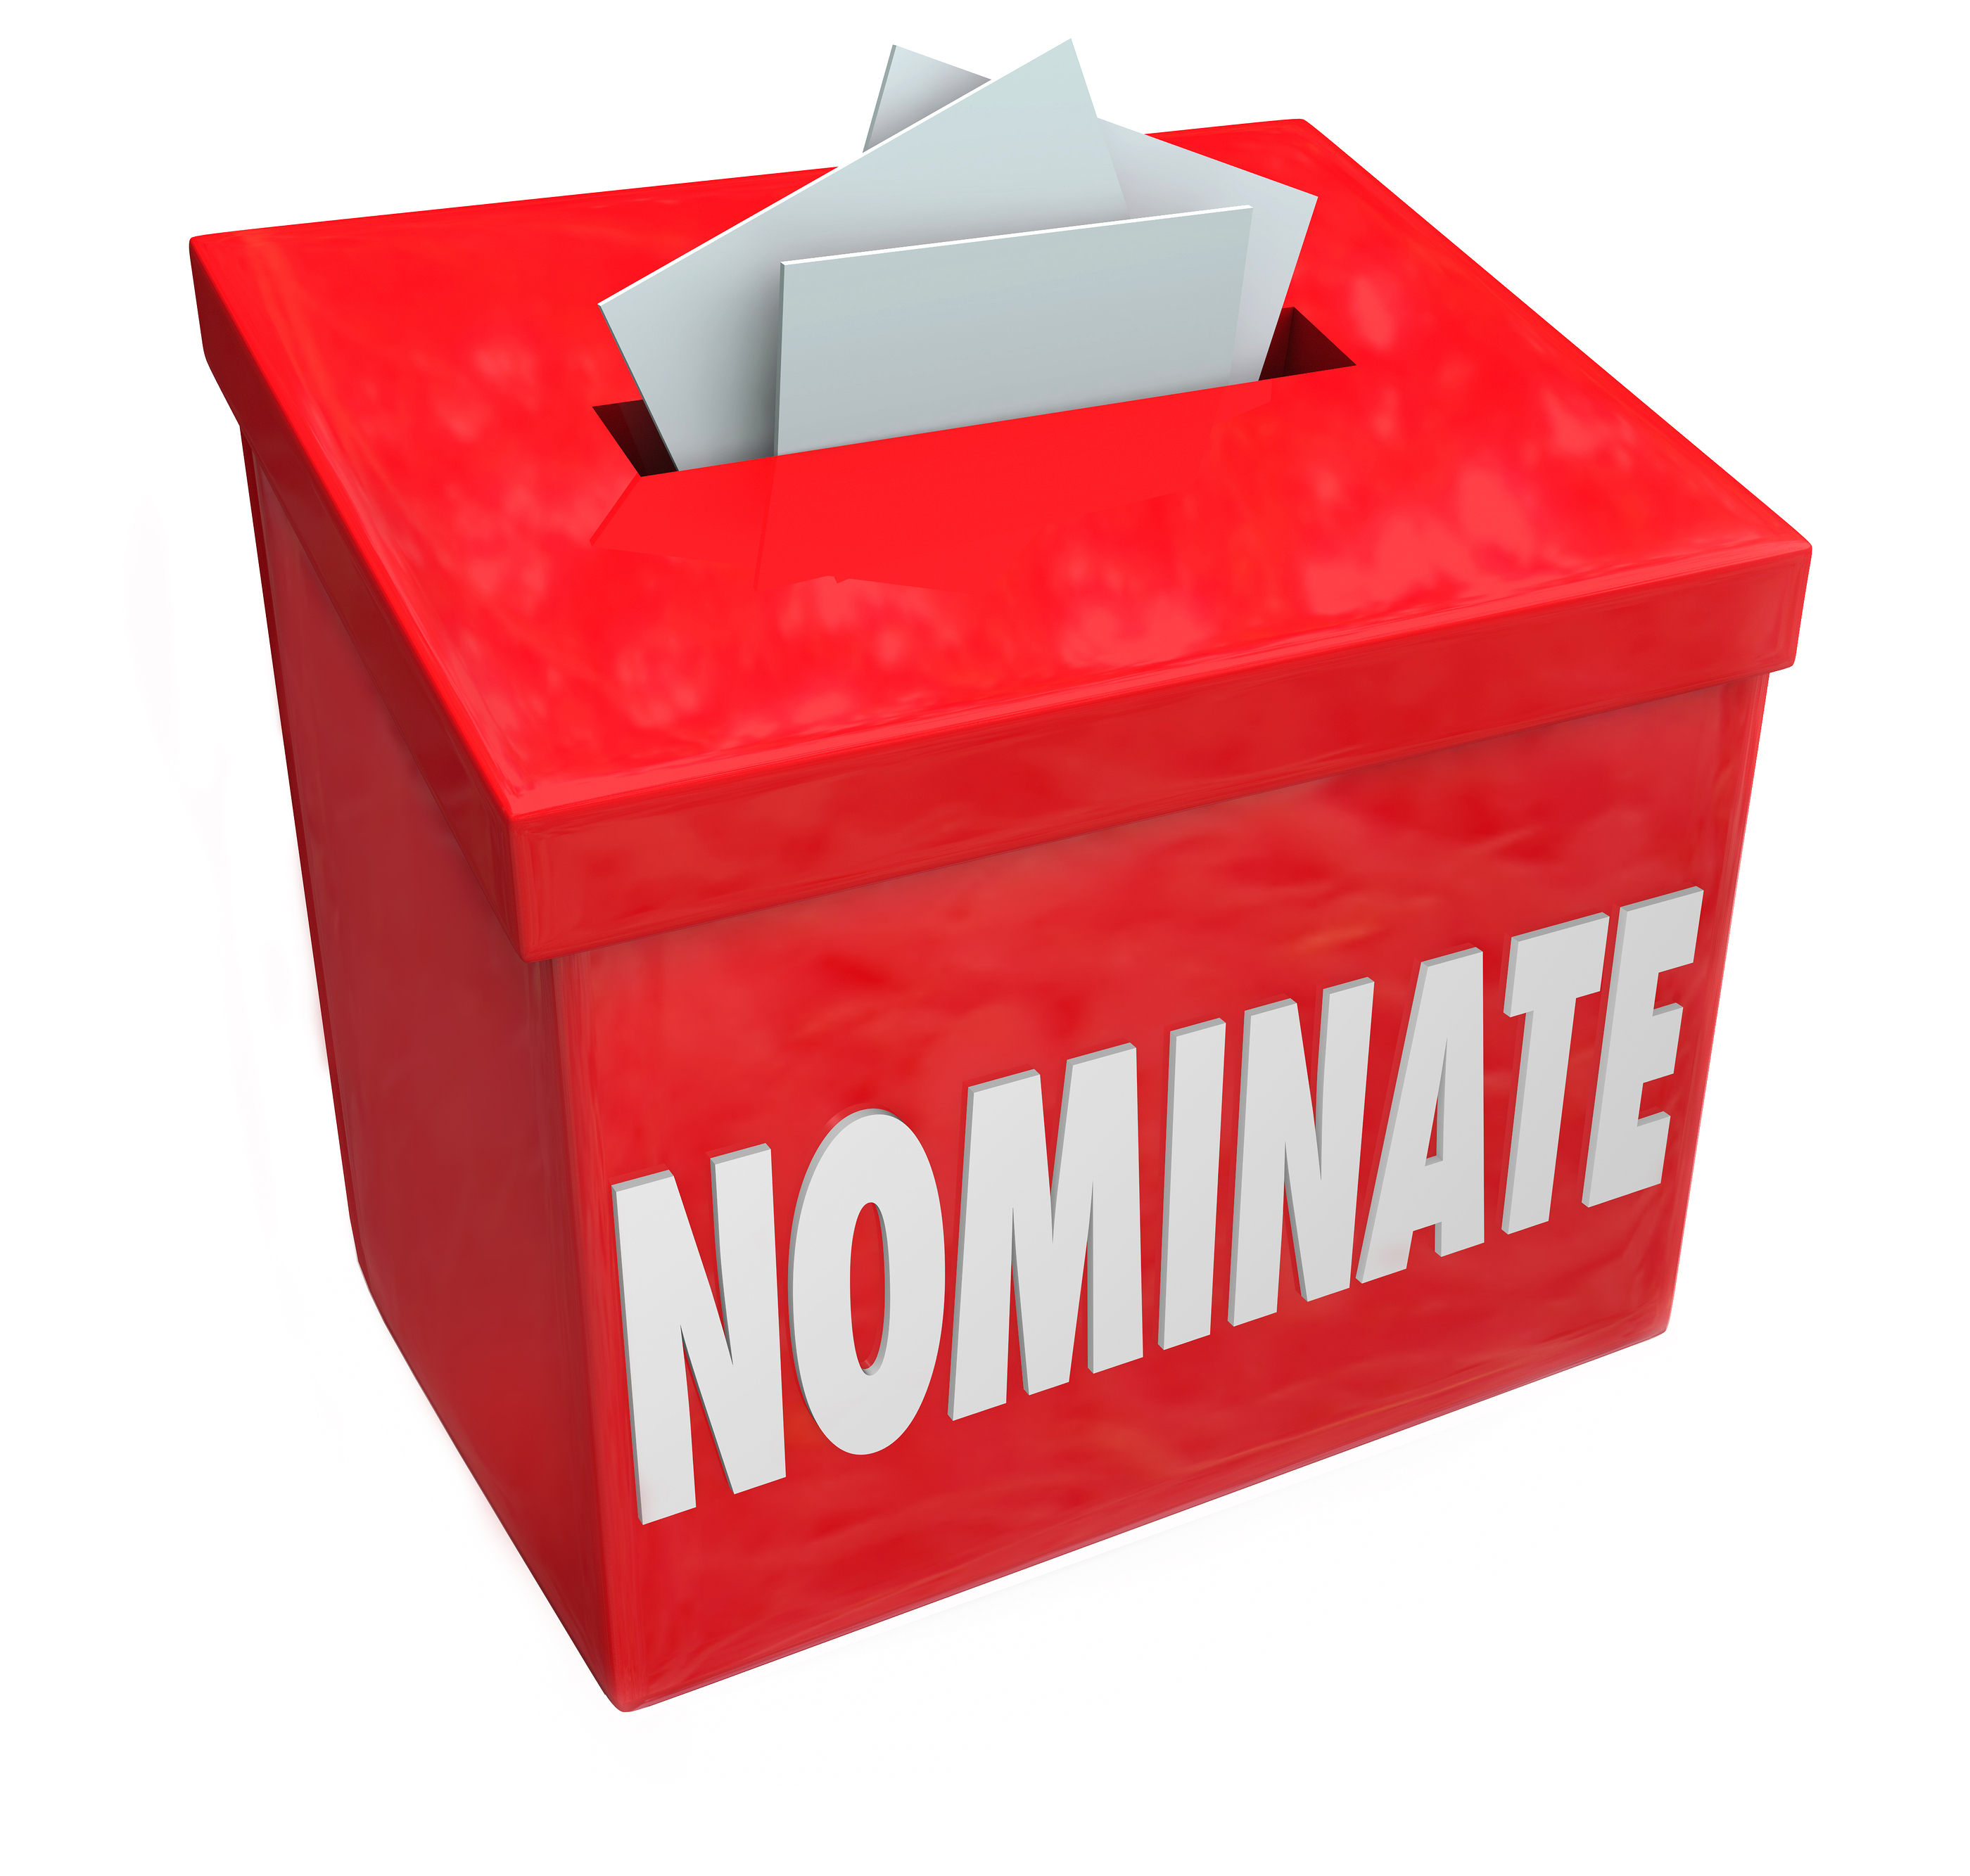 Image result for image of nominate